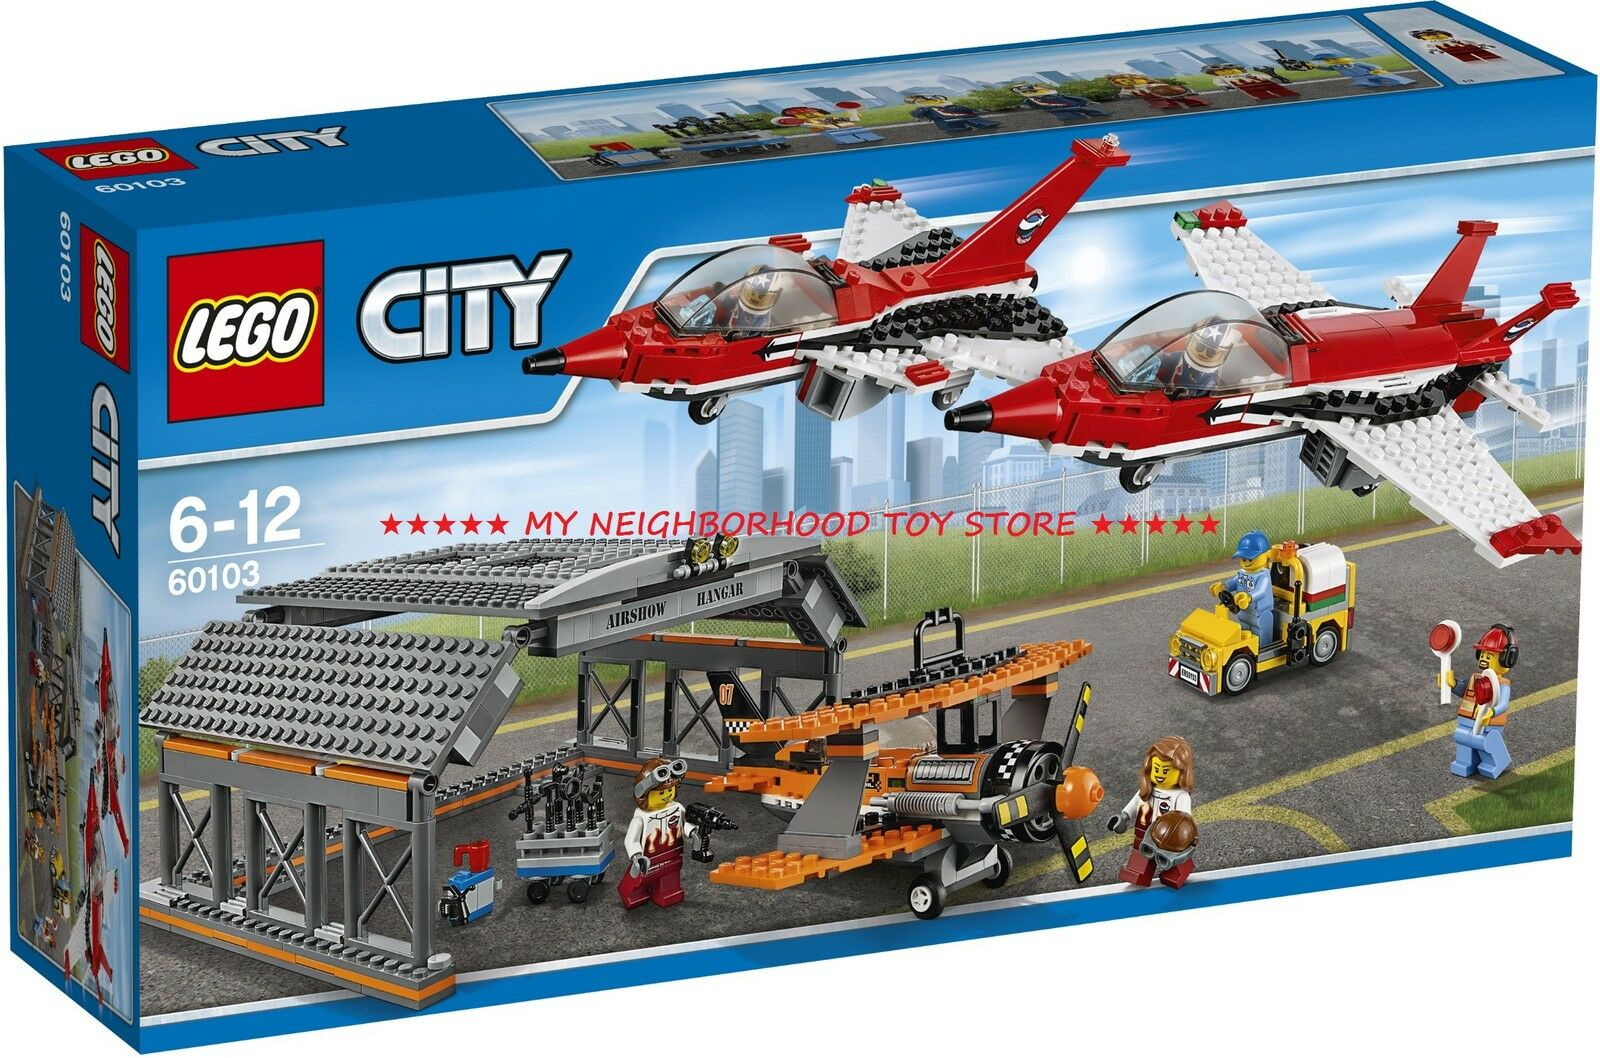 PRONTA CONSEGNA - LEGO 60103 CITY SHOW AEREO ALL'AEROPORTO AIRPORT AIR SHOW